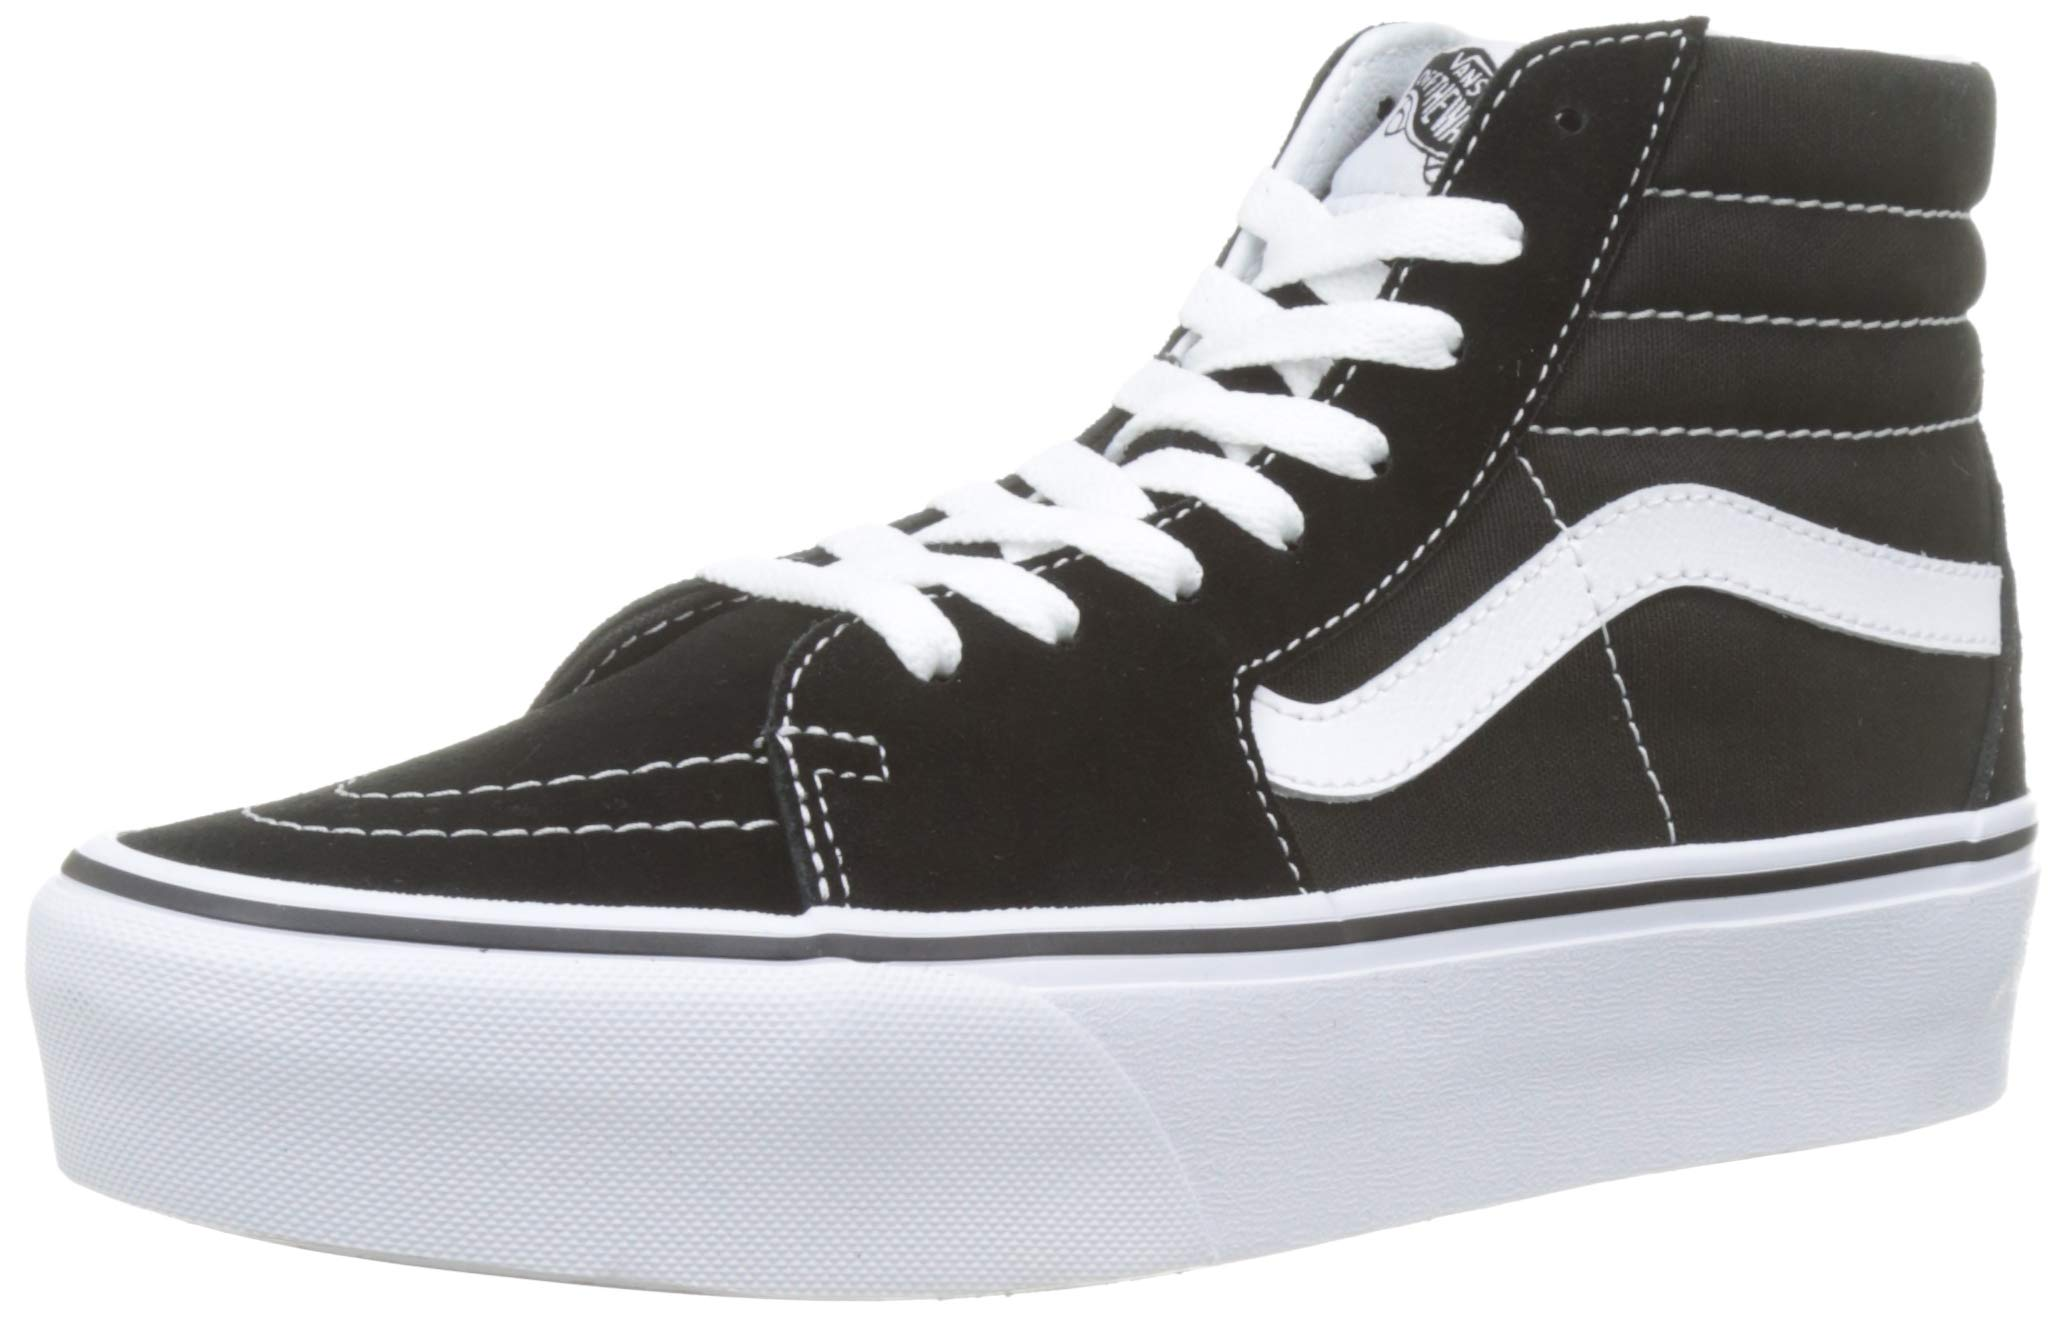 Vans Mens SK8 HI Platform 2.0 Black True White Size 4